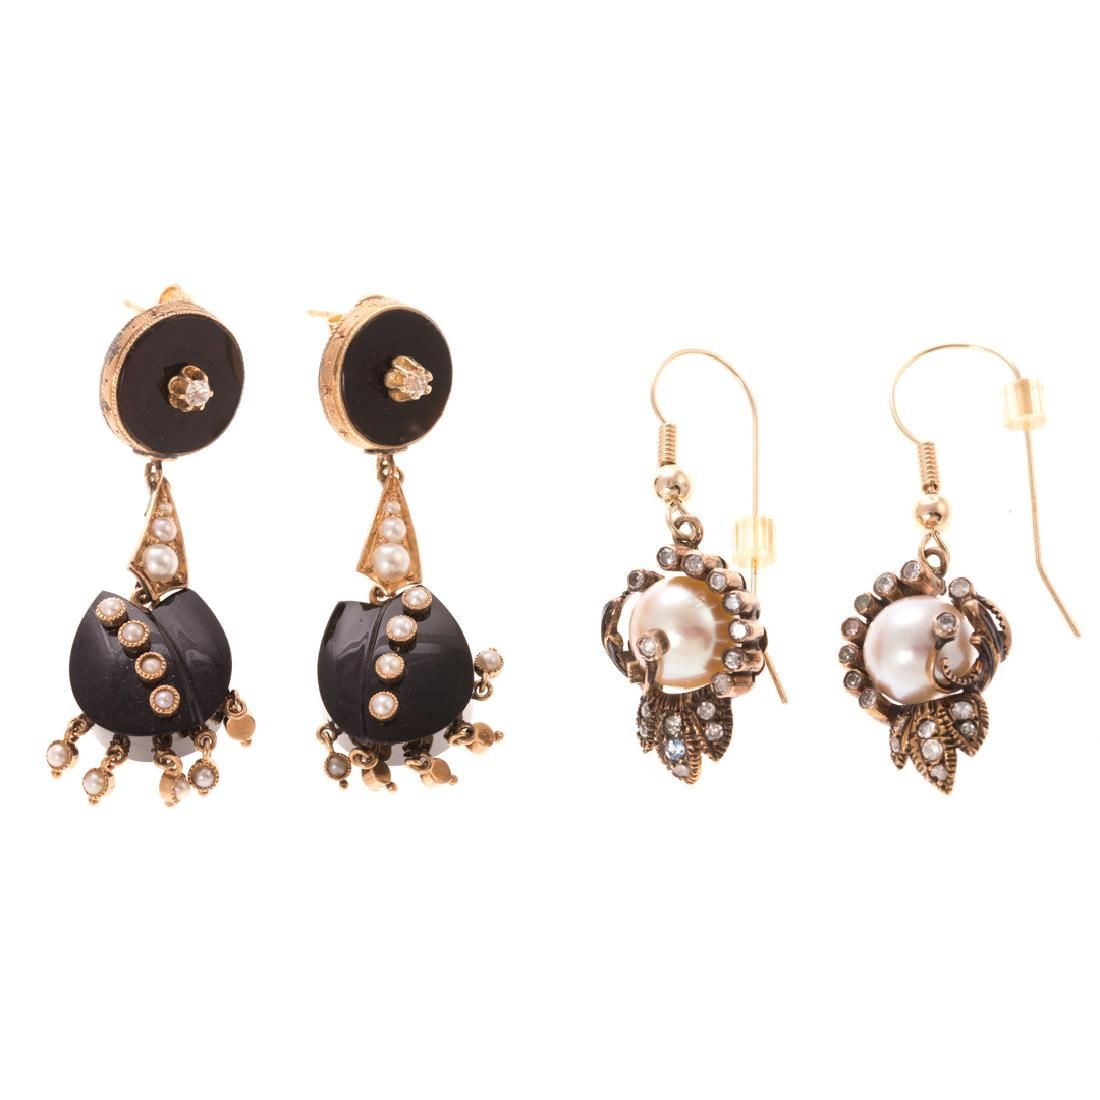 Two Pair of Victorian Earrings in 14K Gold